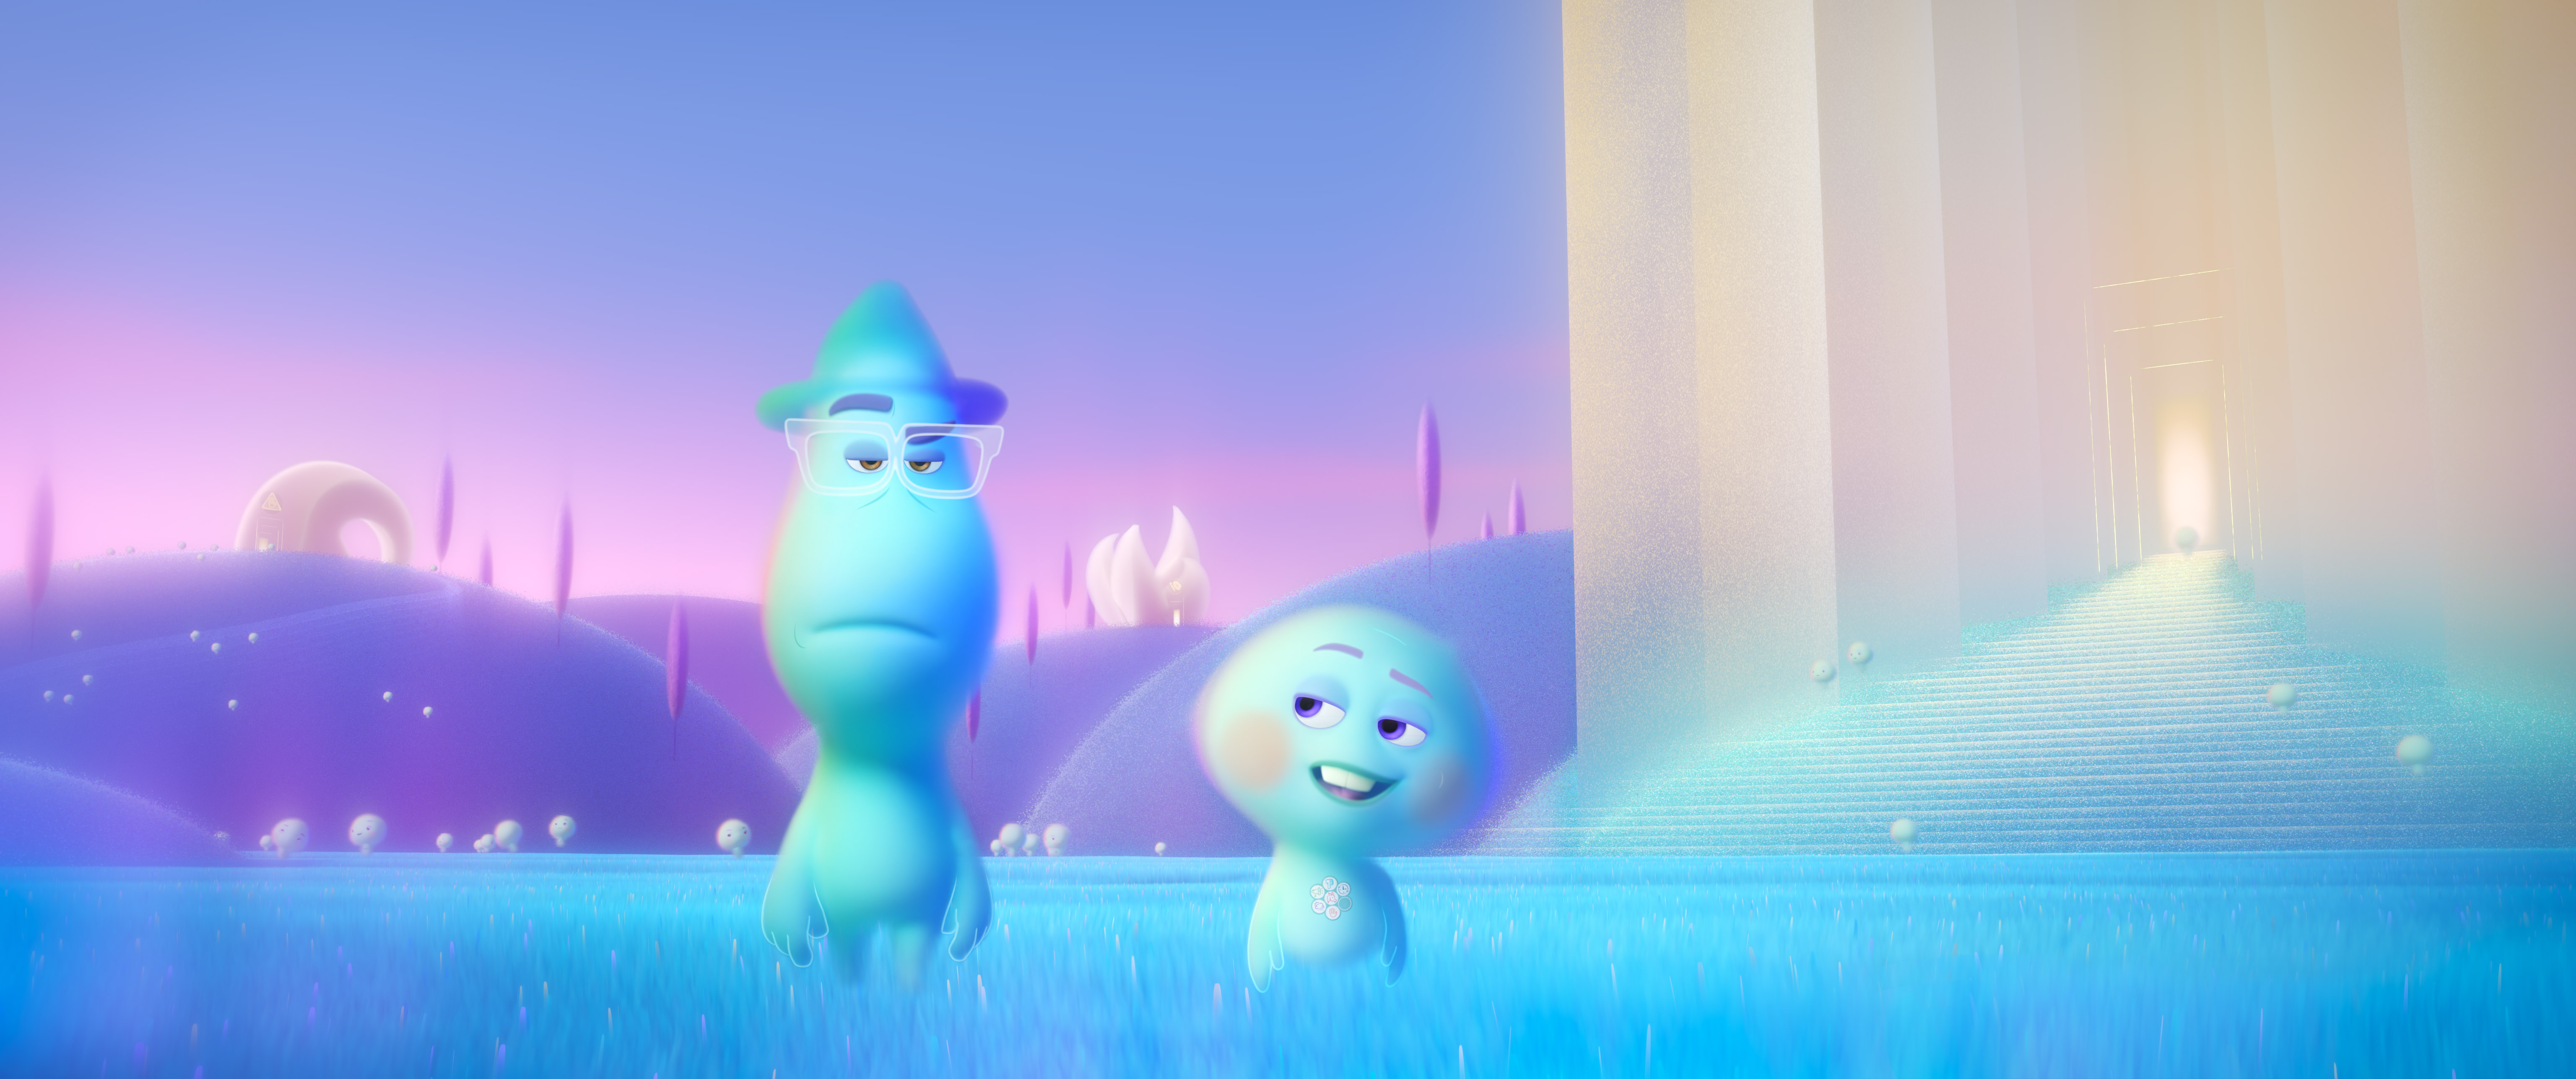 The souls of Joe Gardner, voiced by Jamie Foxx, and 22, voiced by Tina Fey